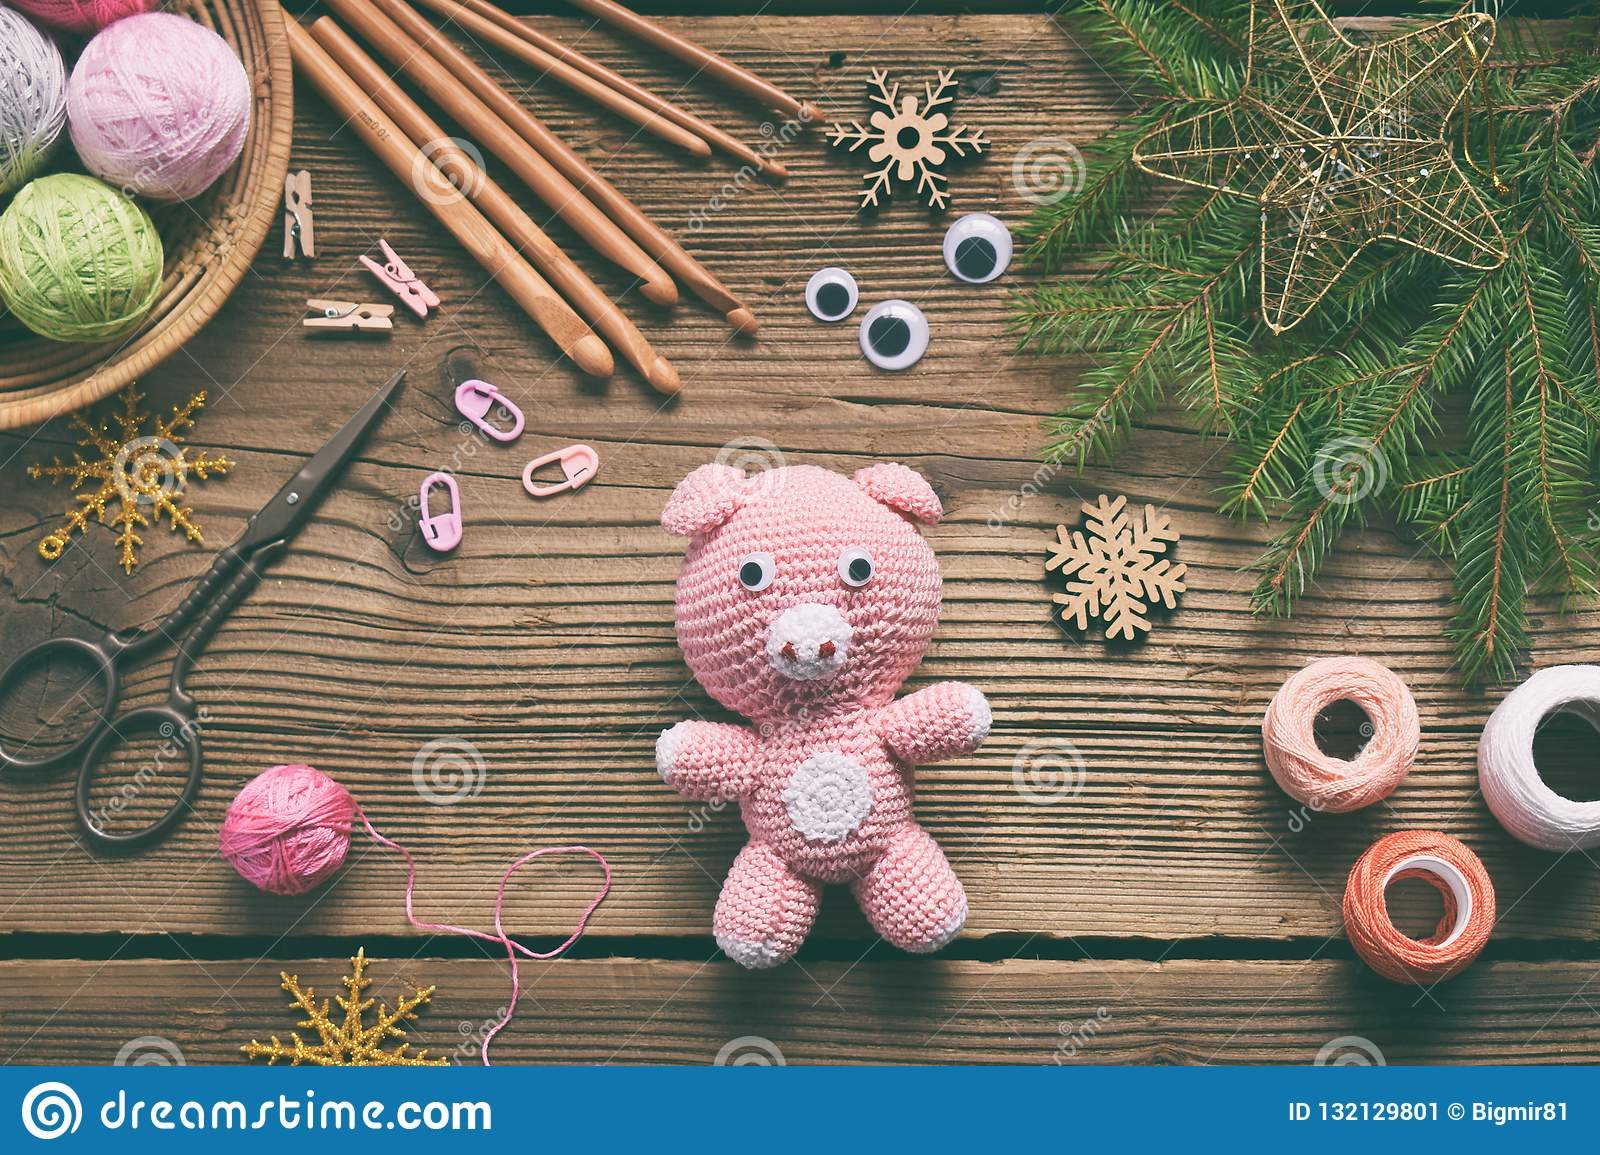 Pink Pig Symbol Of 2019 Happy New Year Crochet Toy For Child On